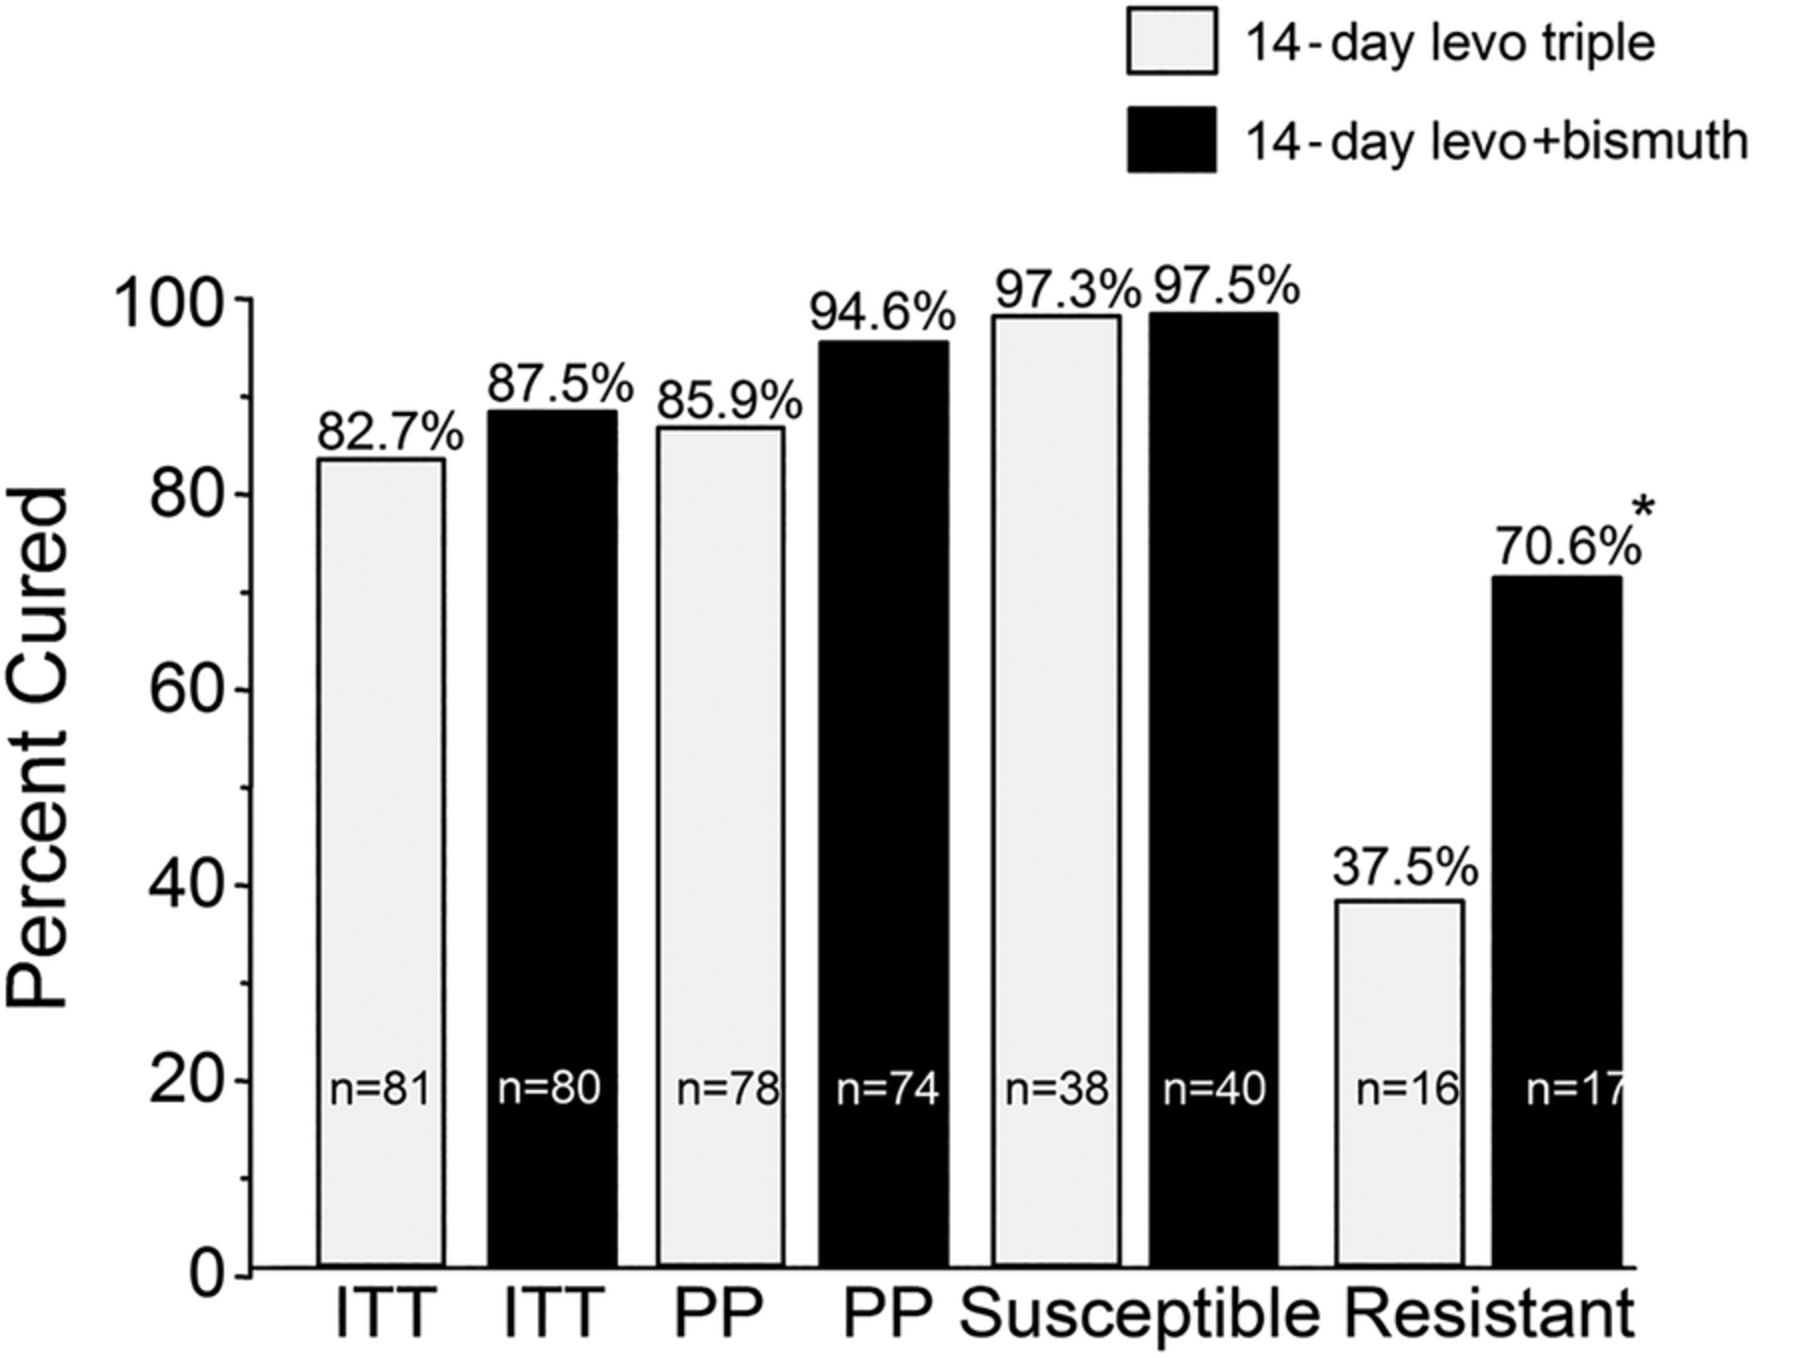 Role of bismuth in improving Helicobacter pylori eradication